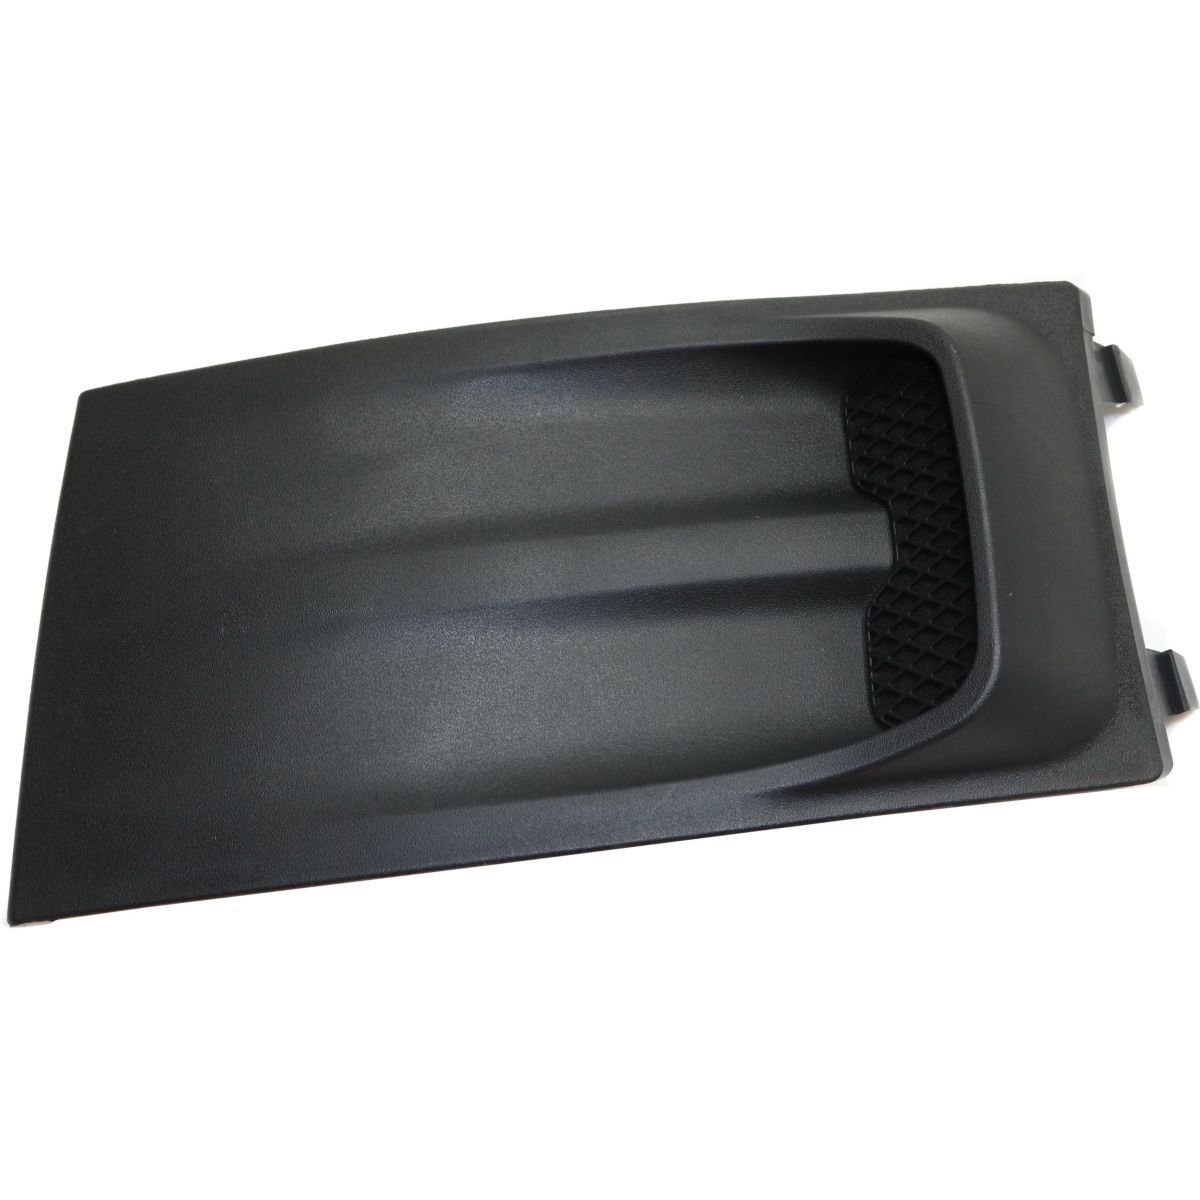 DAT 08-11 Ford Focus 2009-2010 SEDAN ONLY Plastic Left Driver Side Textured Black Fog Light Cover FO1038106 DAT AUTO PARTS